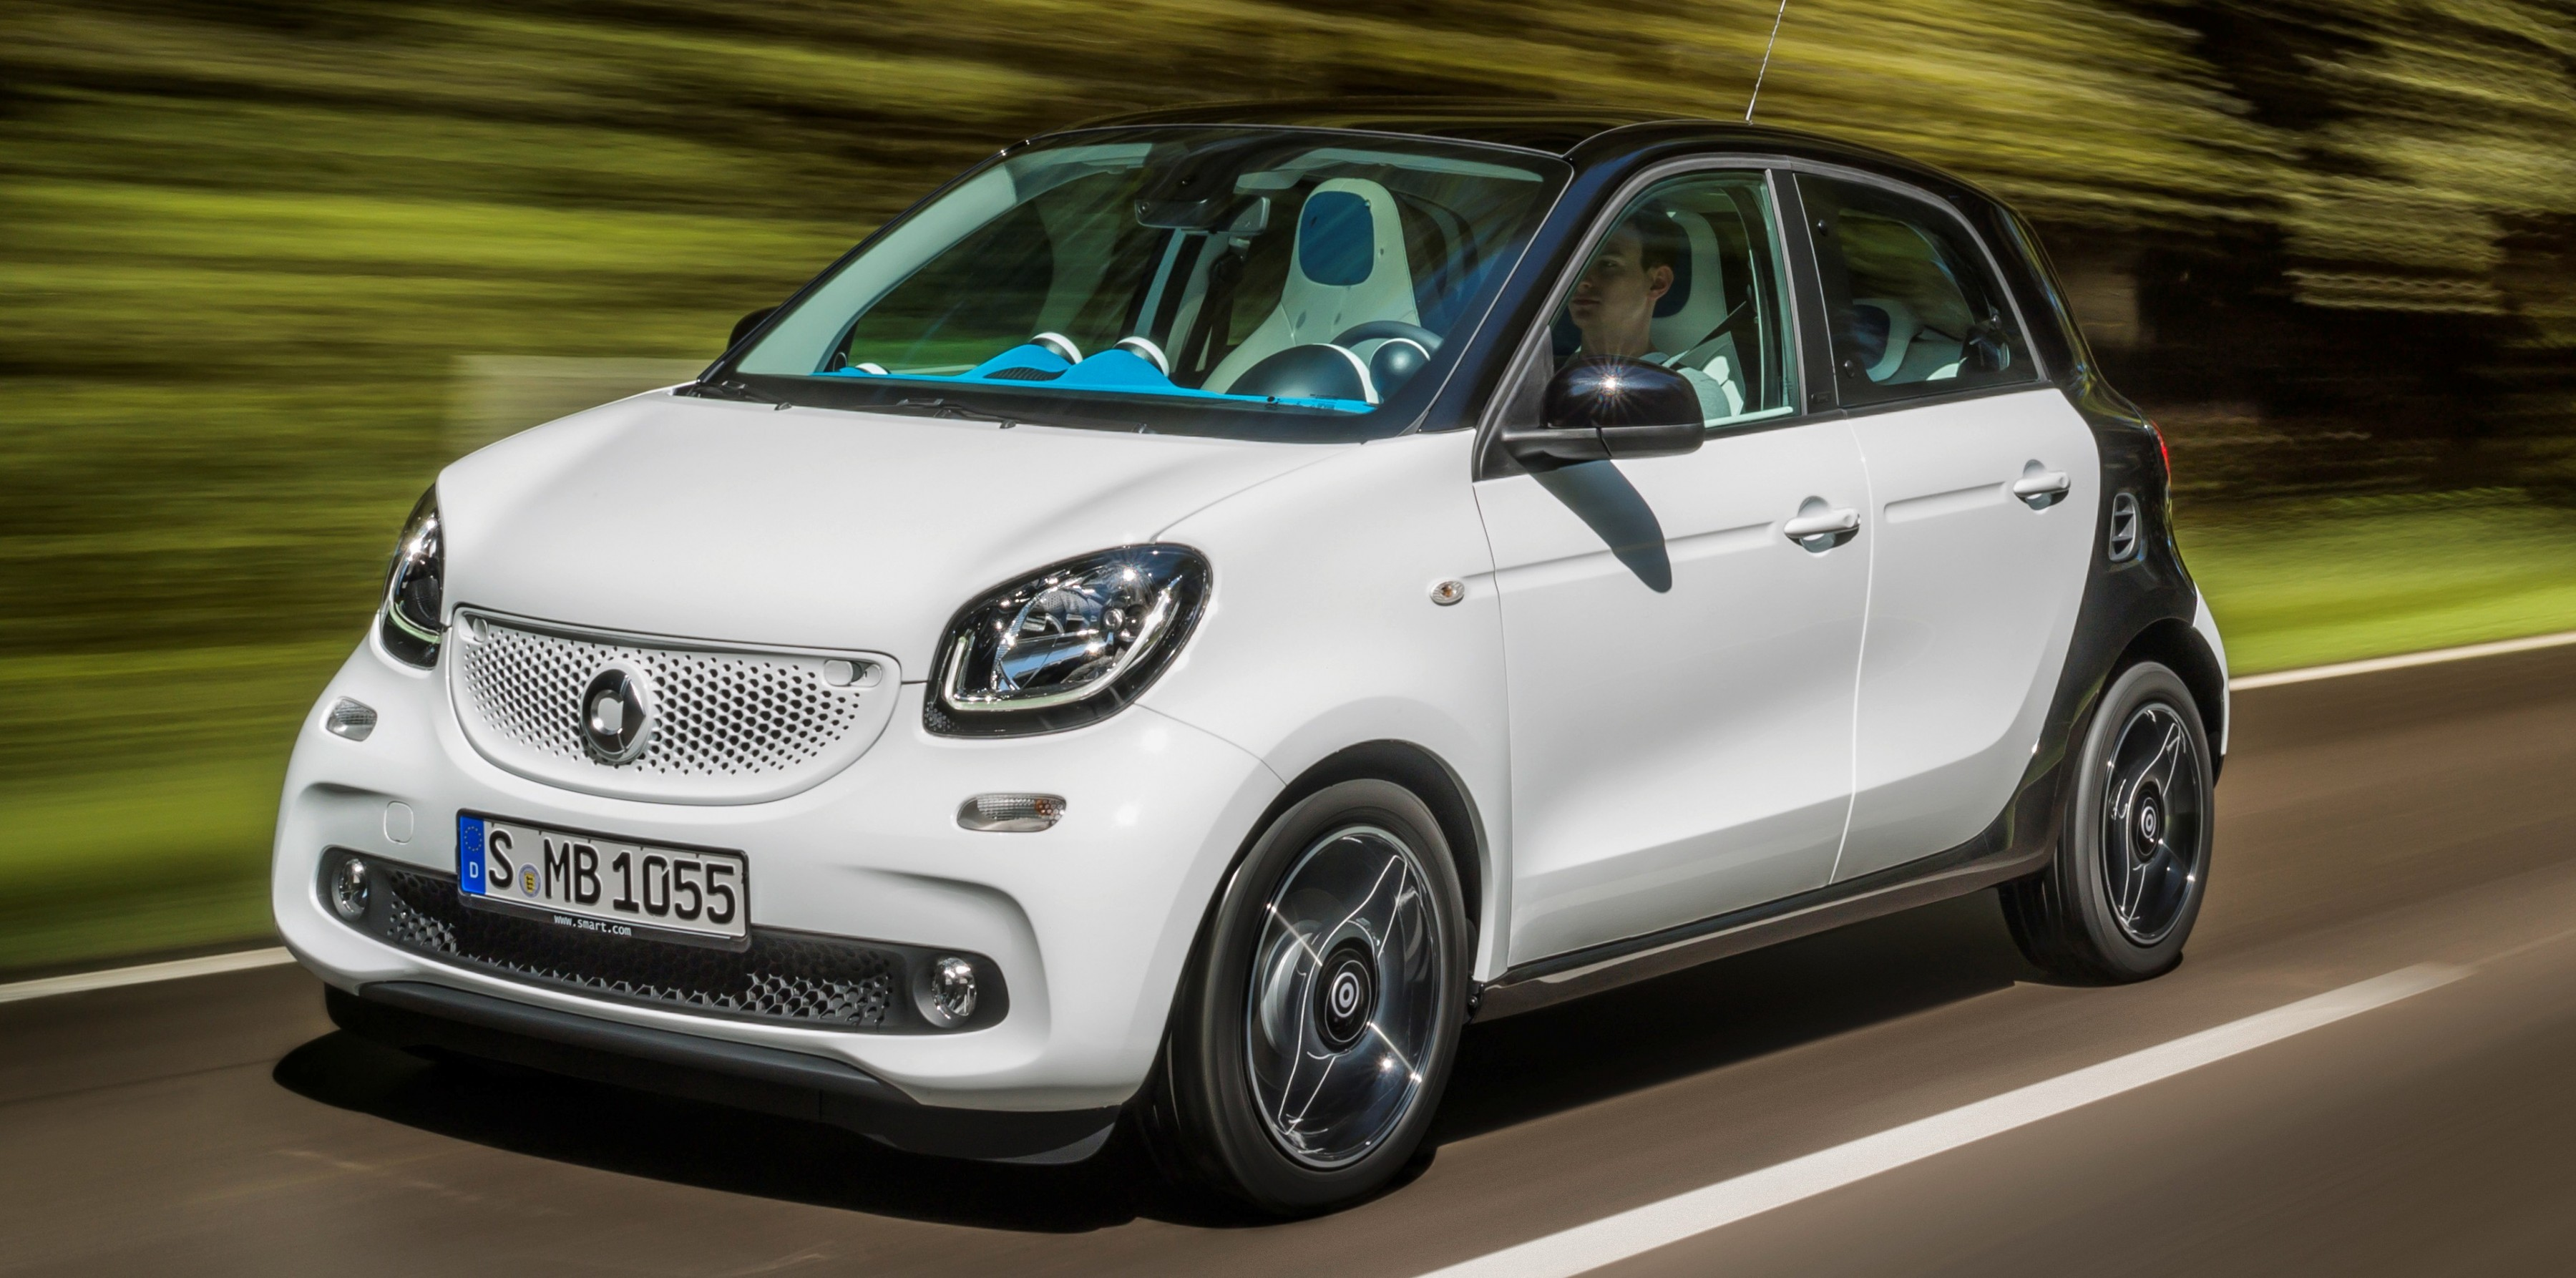 Le Meilleur 2015 Smart Fortwo And Forfour New Dual Clutch Automatic Ce Mois Ci